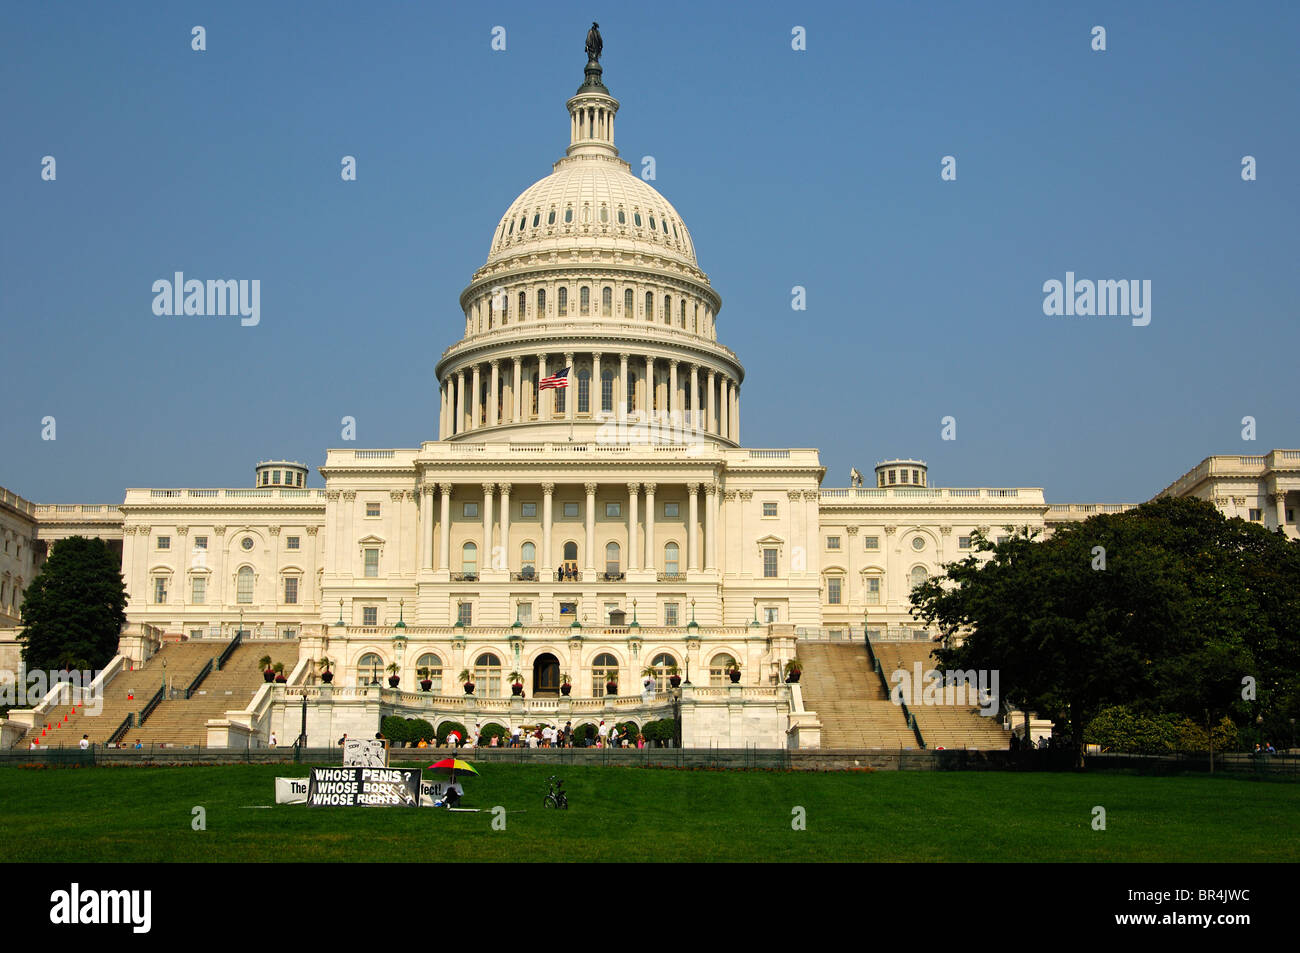 Protest action against the male genital mutilation through circumcision at the United States Capitol, Washington, - Stock Image